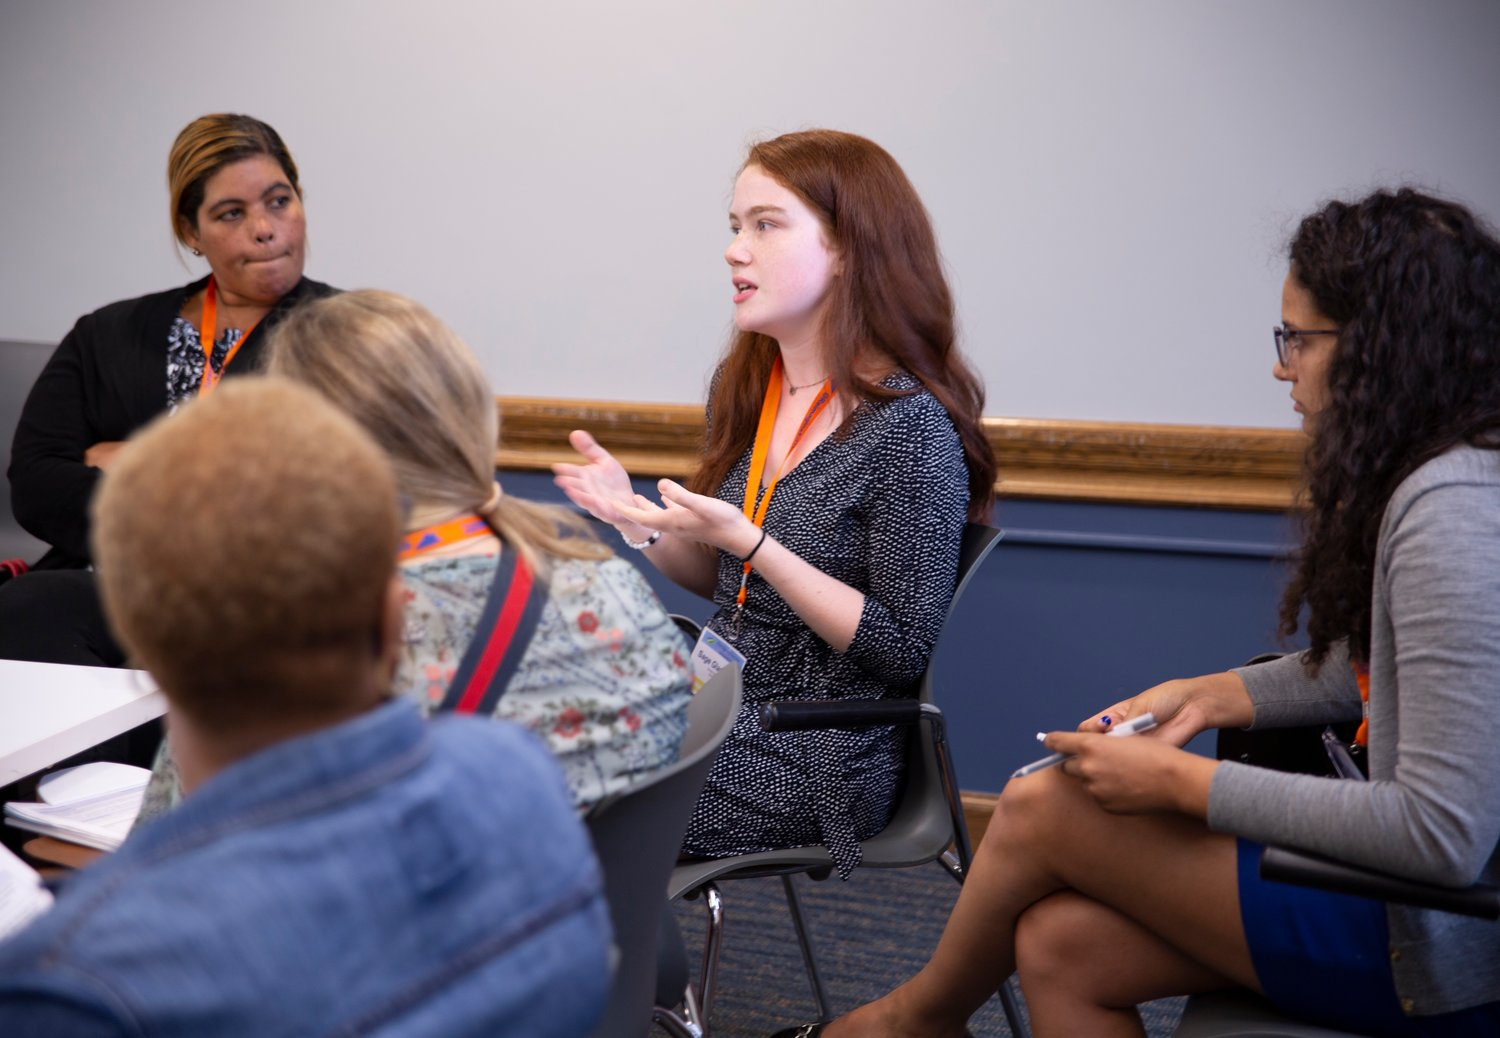 Sage Gladstone, 15, Syosset High School sophomore, center, discussed Culturally Responsive-Sustaining Education with educators at the Reimaging Education Conference at Teachers College, Columbia University on July 18.